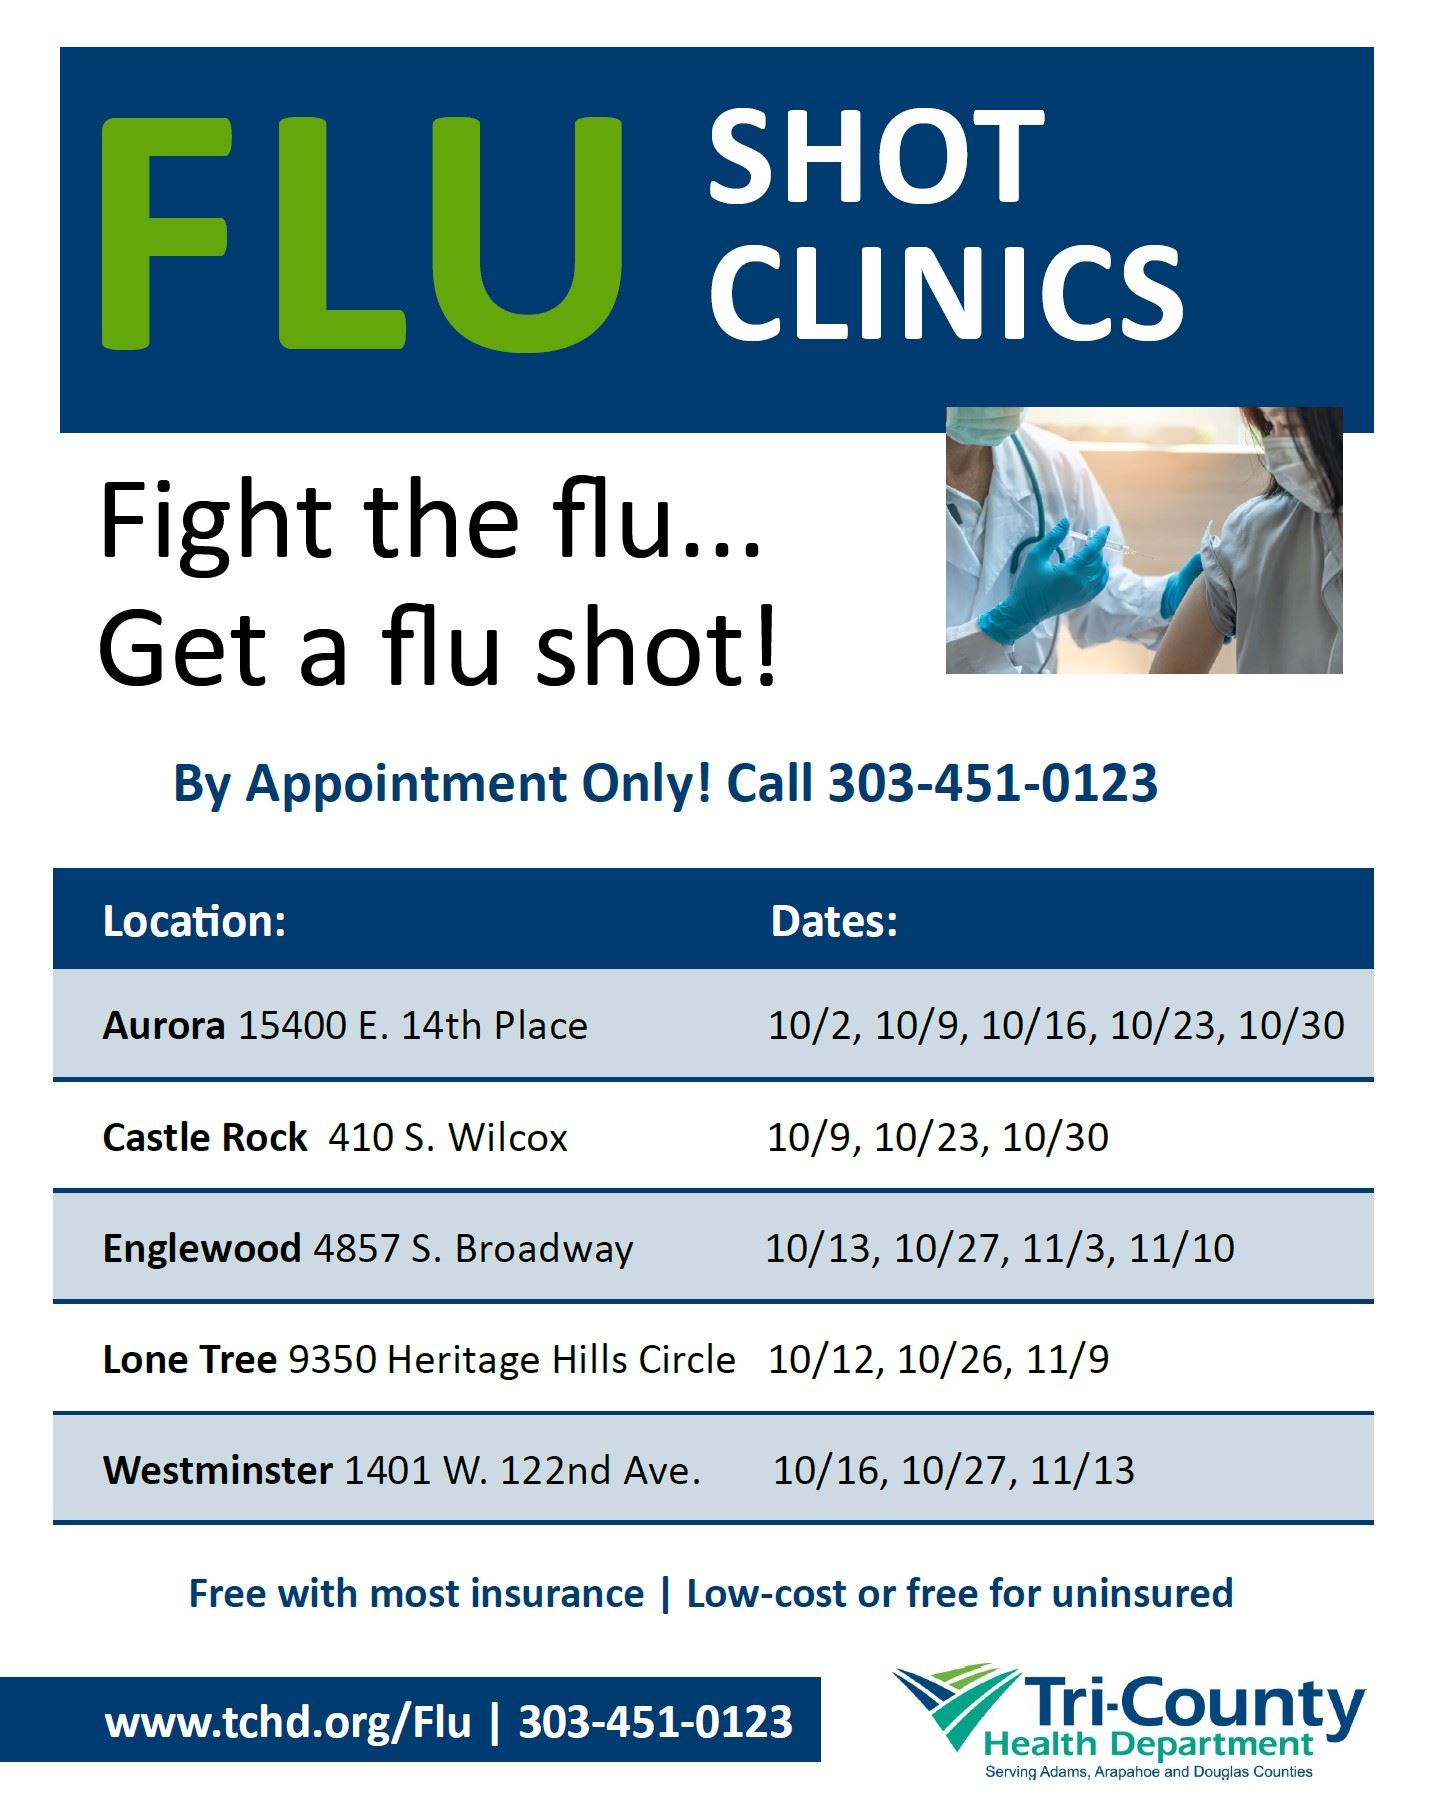 List of locations for flu shot clinics